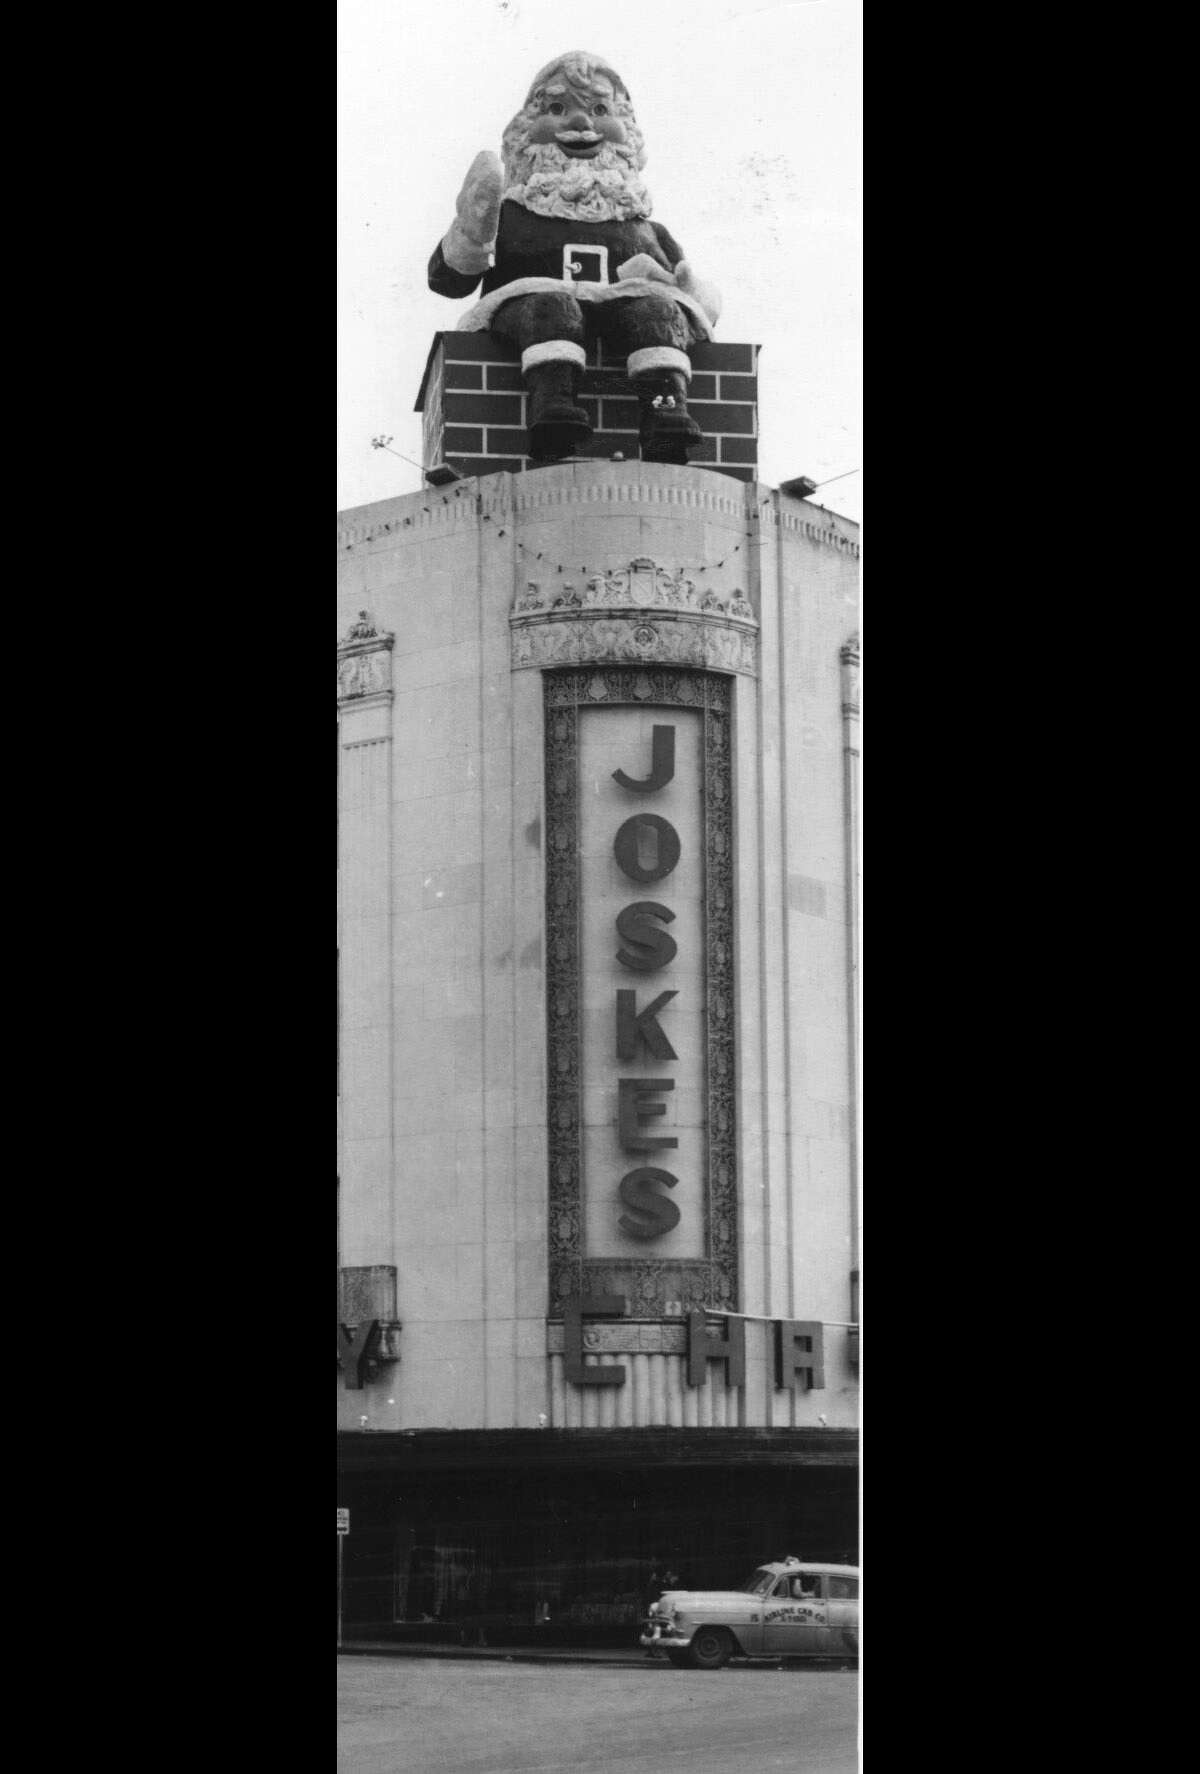 Joske's always went all out at Christmastime to lure their patrons in. Seen here is the infamous Santa sitting on the chimney which was placed on the roof of Joske's to welcome the shoppers in. (1956) CREDIT: EXPRESS-NEWS FILE PHOTO